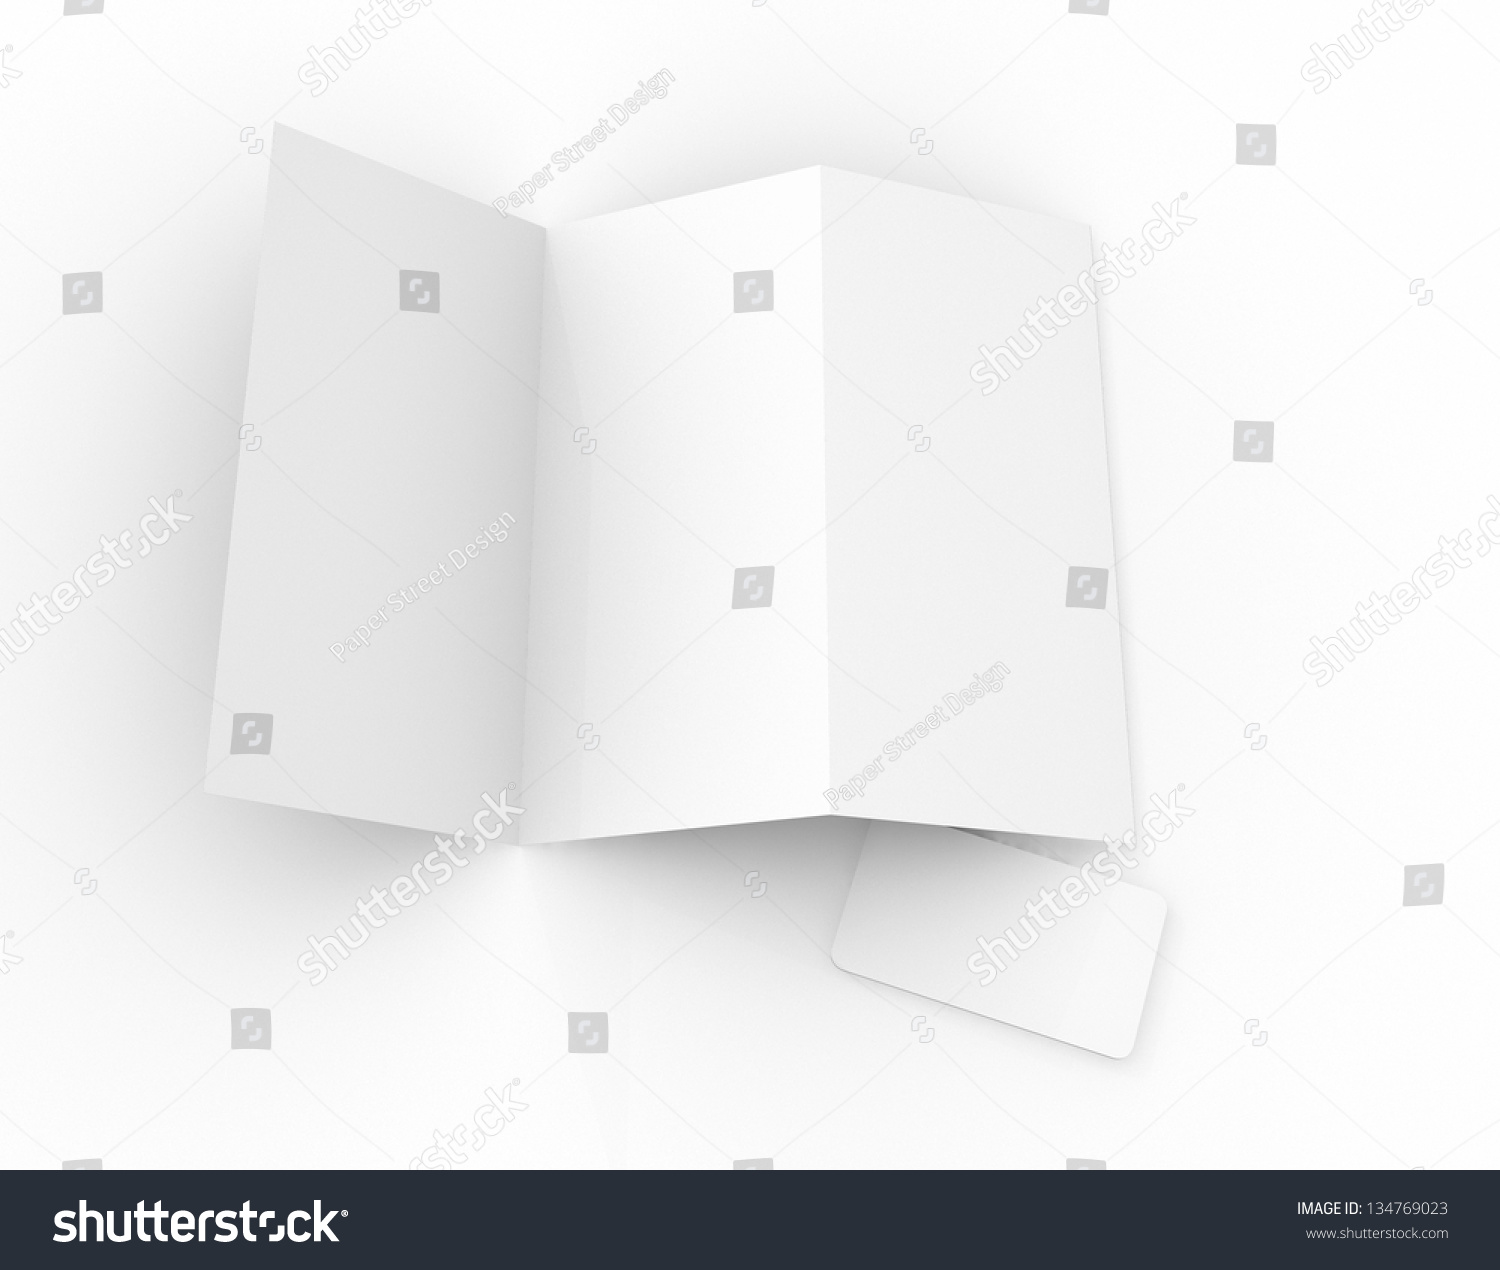 three panel brochure template - blank template of a 3 panel brochure leaflet and business